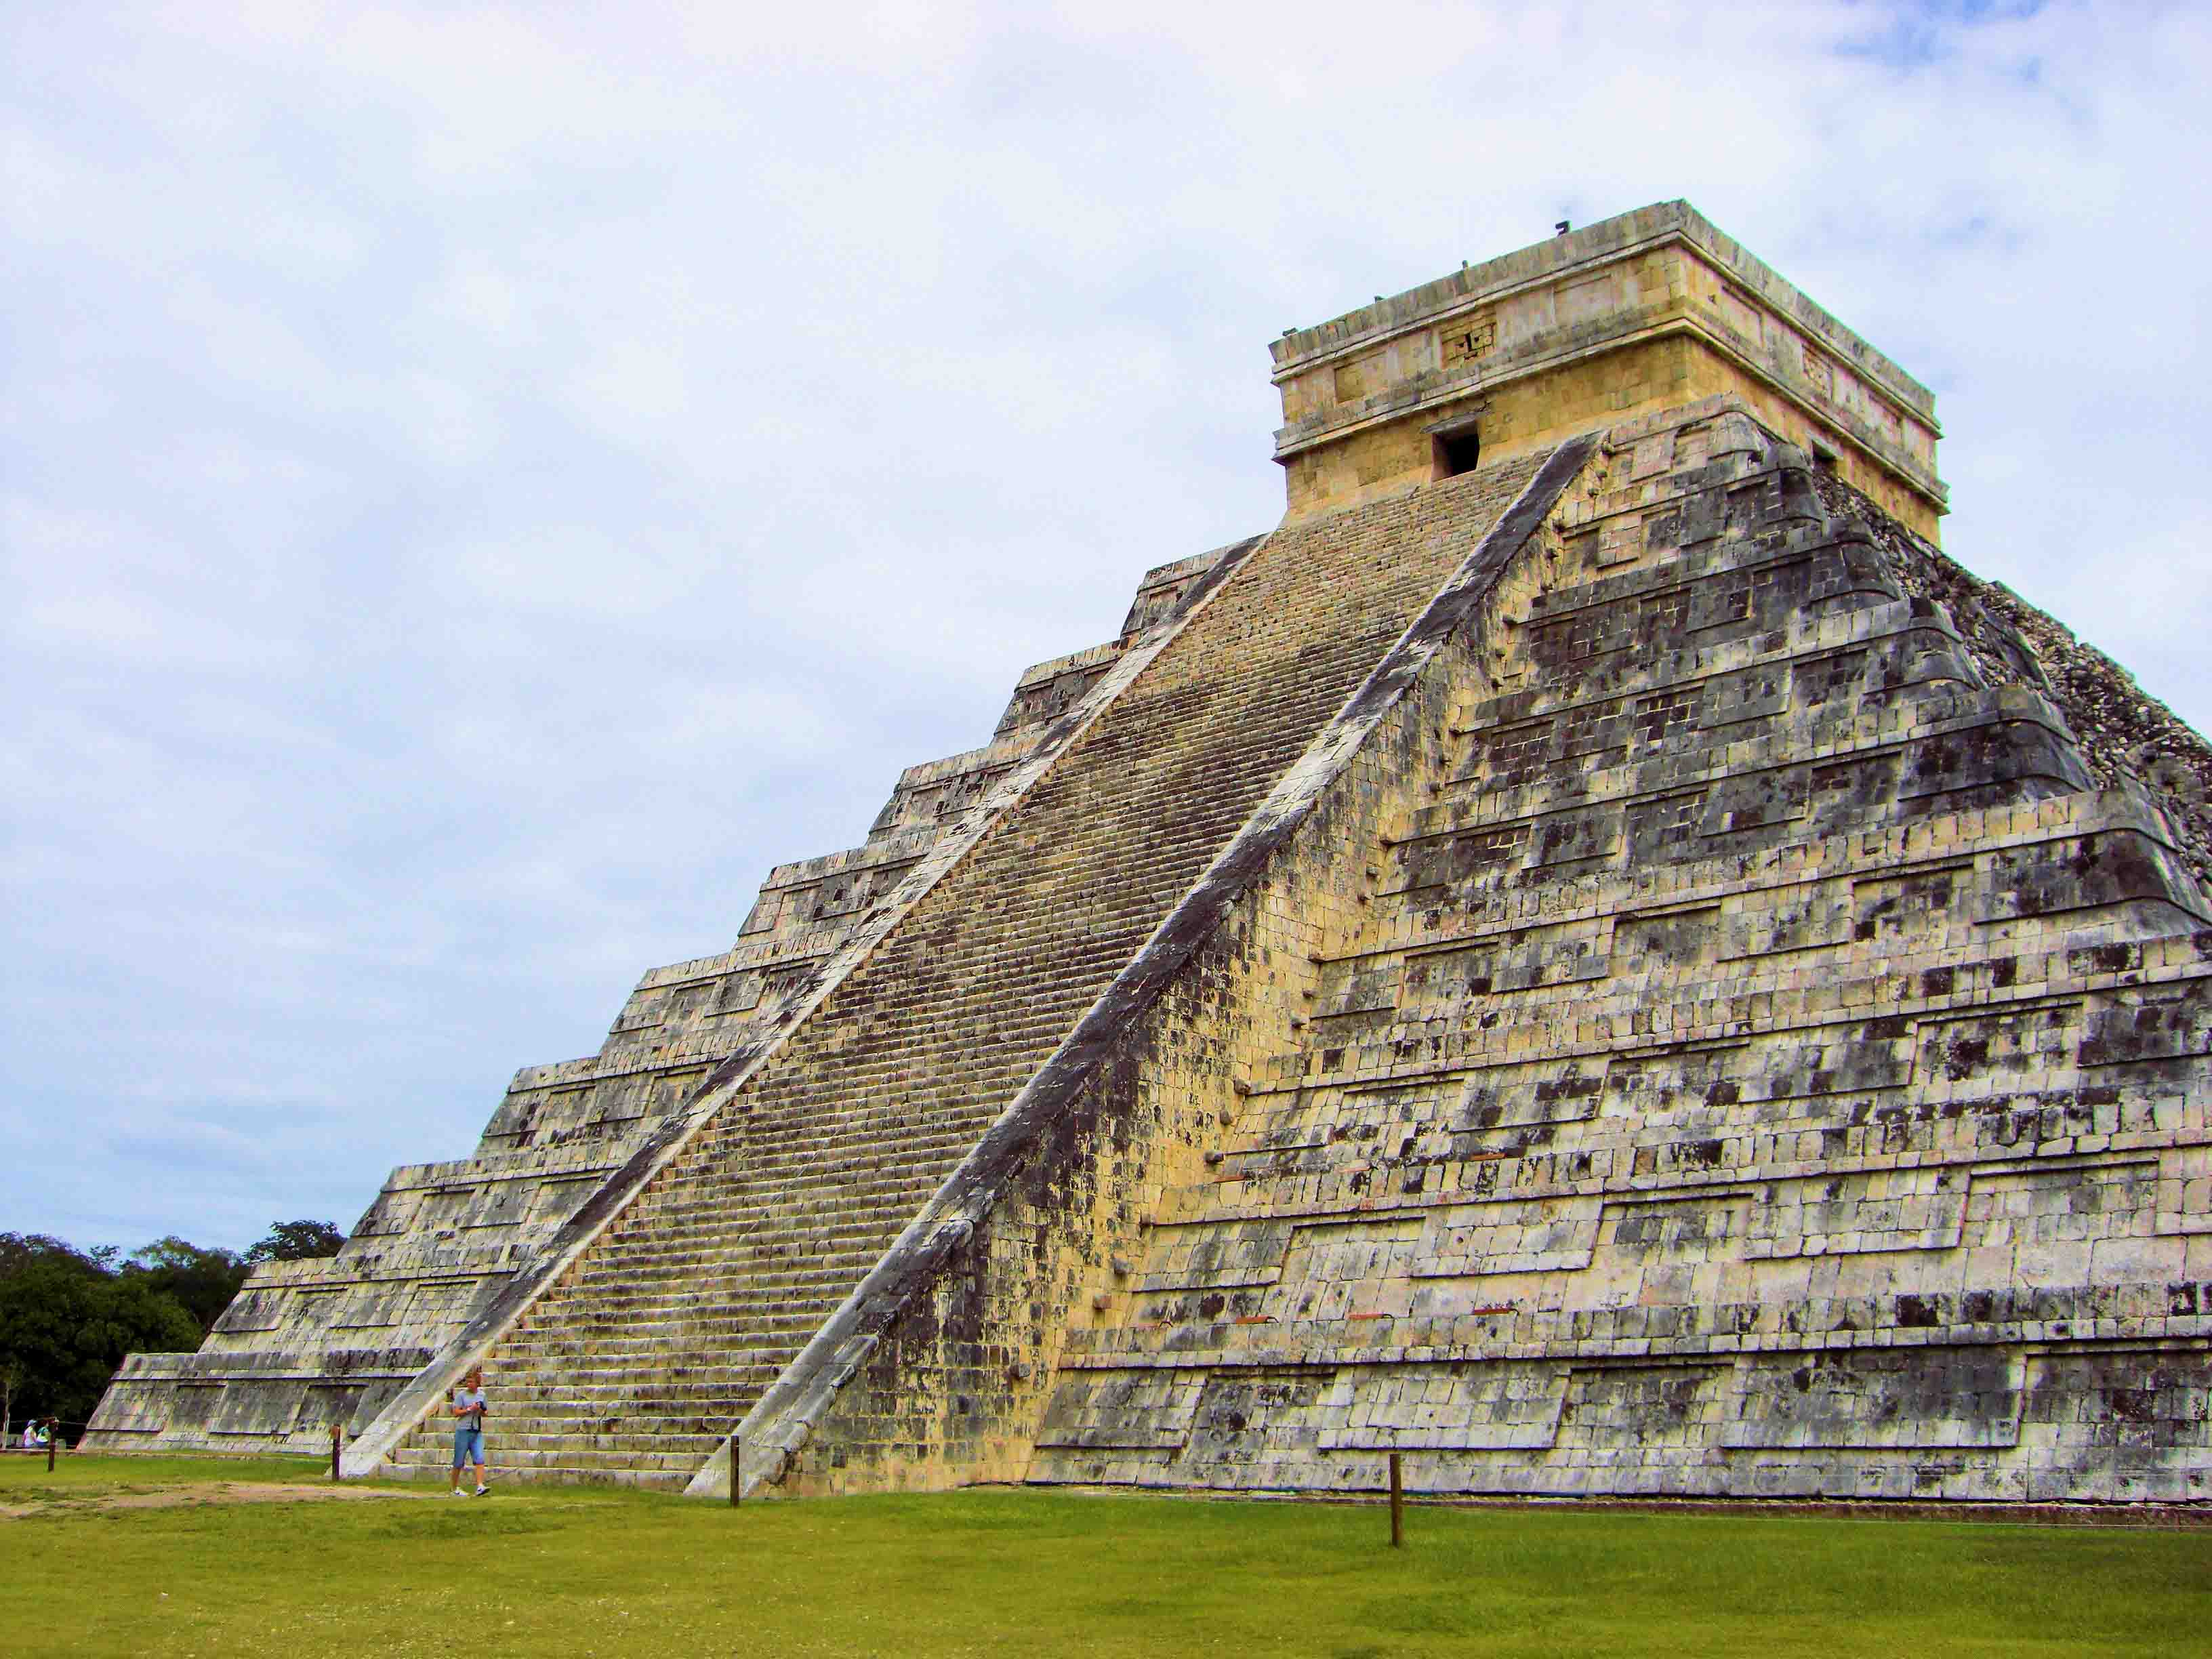 Pyramid of the Magician in Mexico 2